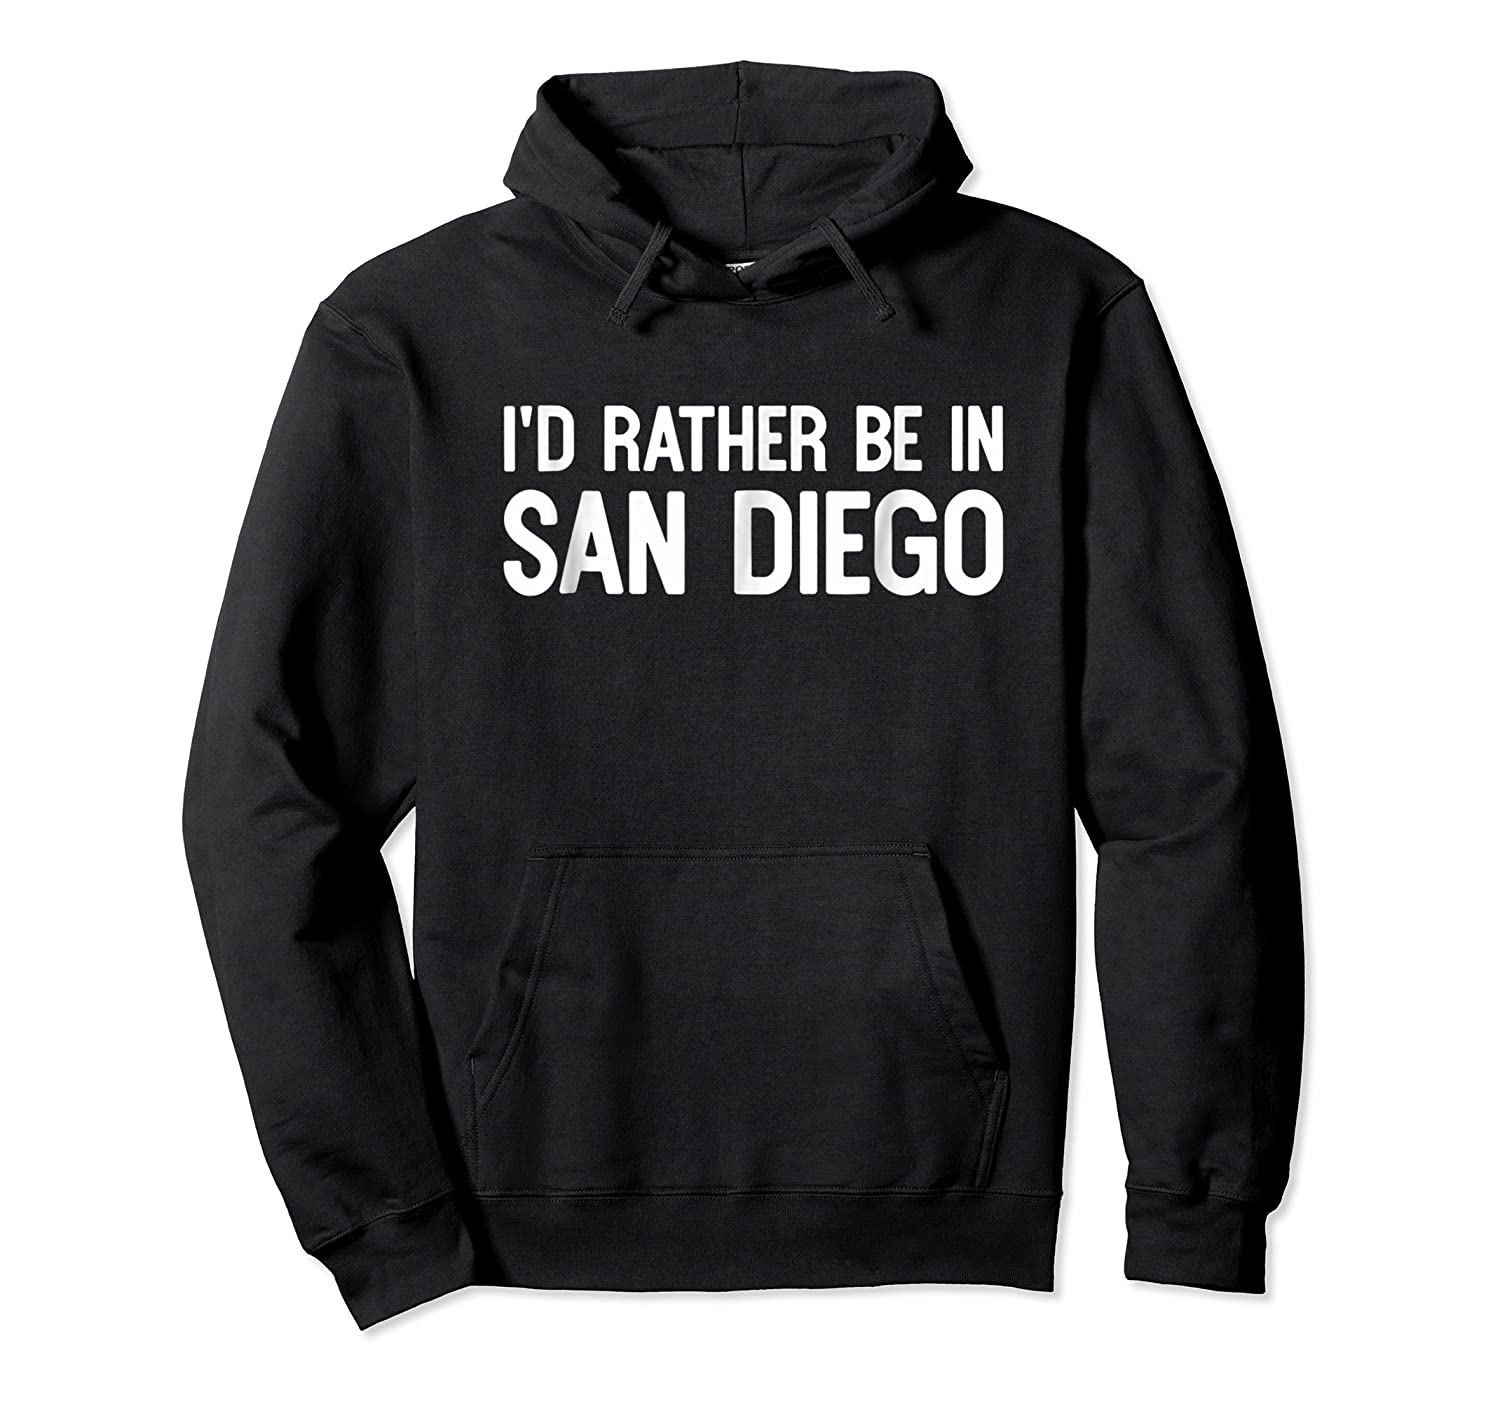 I D Rather Be In San Diego Funny Usa Home City State T Shirt Unisex Pullover Hoodie